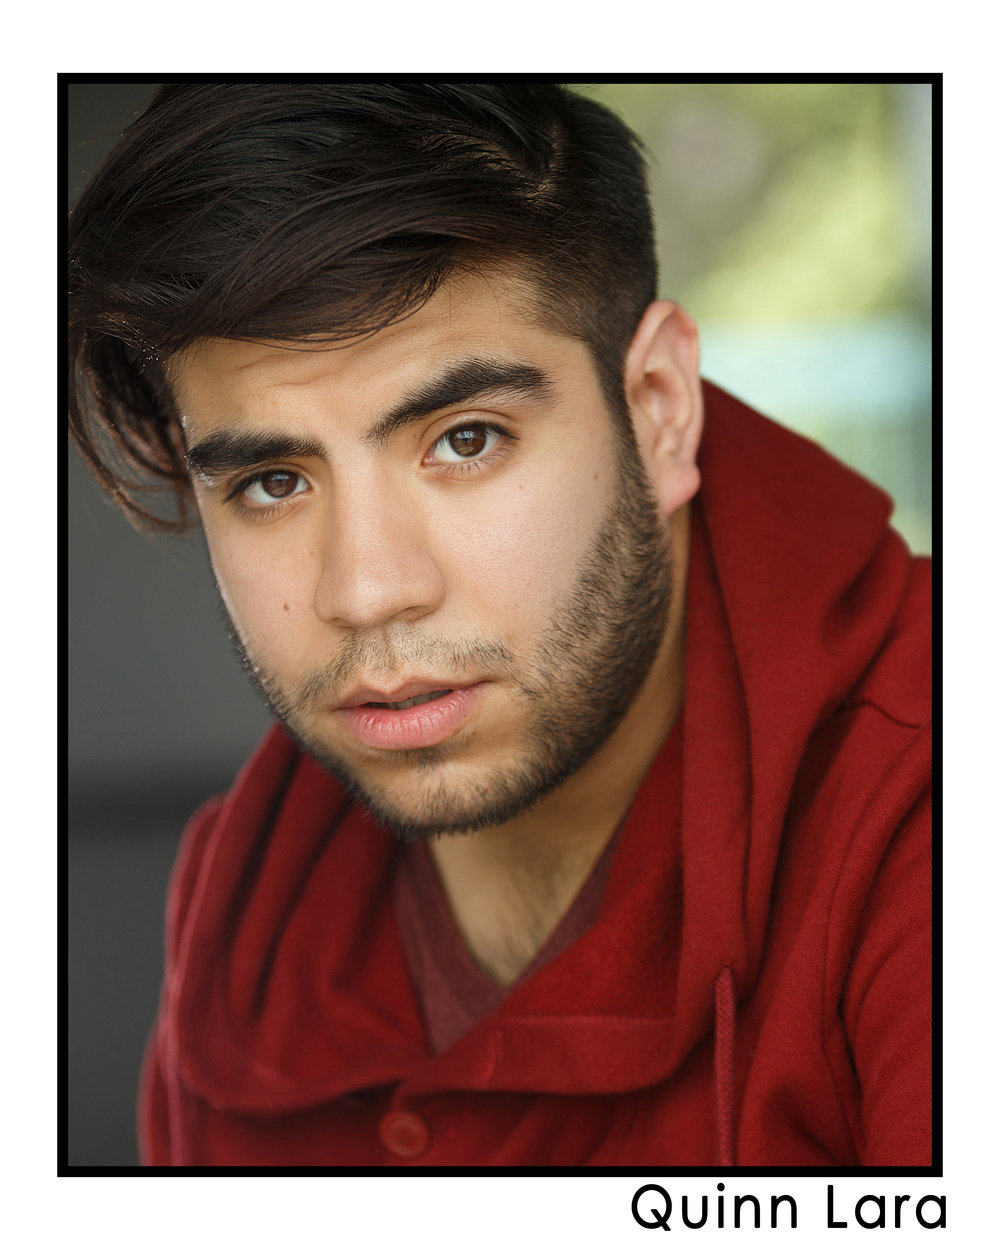 Quinn Lara is a recent graduate of UT Austin's school of theatre and dance. While at University, Quinn appeared in both 'Hamlet' and 'As You Like It'. In addition to his film and television roles, he has recently performed in Austin Shakespeare's productions of 'Comedy of Errors', 'Wolf Hall', and 'A Streetcar Named Desire'.